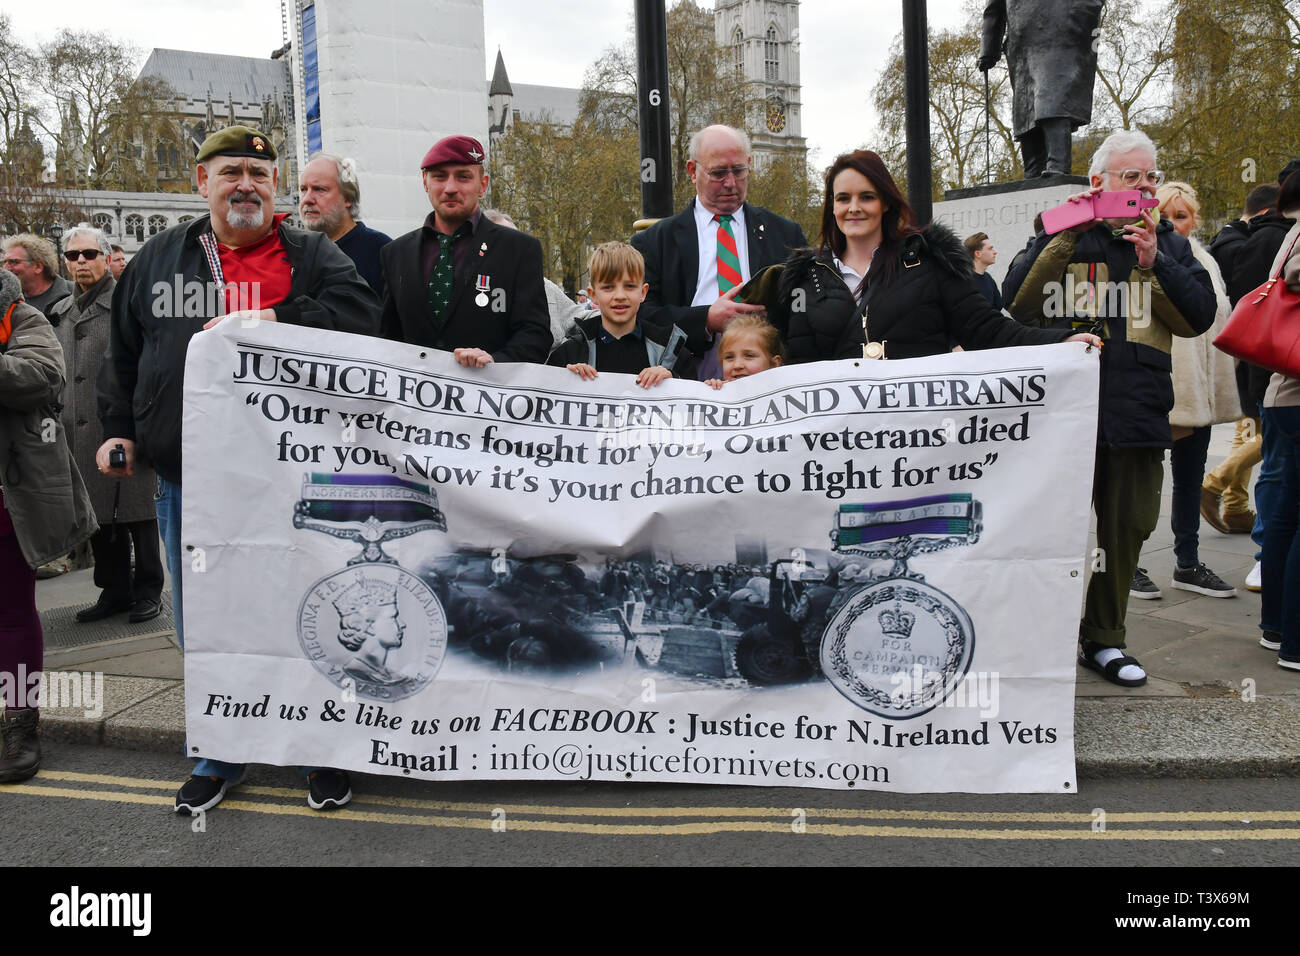 London, UK. 12th Apr 2019. Soldier F is to face two murder charges and four attempted murder charges over the infamous massacre of 14 civil rights demonstrators by British paratroopers in Derry at the height of the Troubles on January 30, 1972. Credit: Picture Capital/Alamy Live News - Stock Image